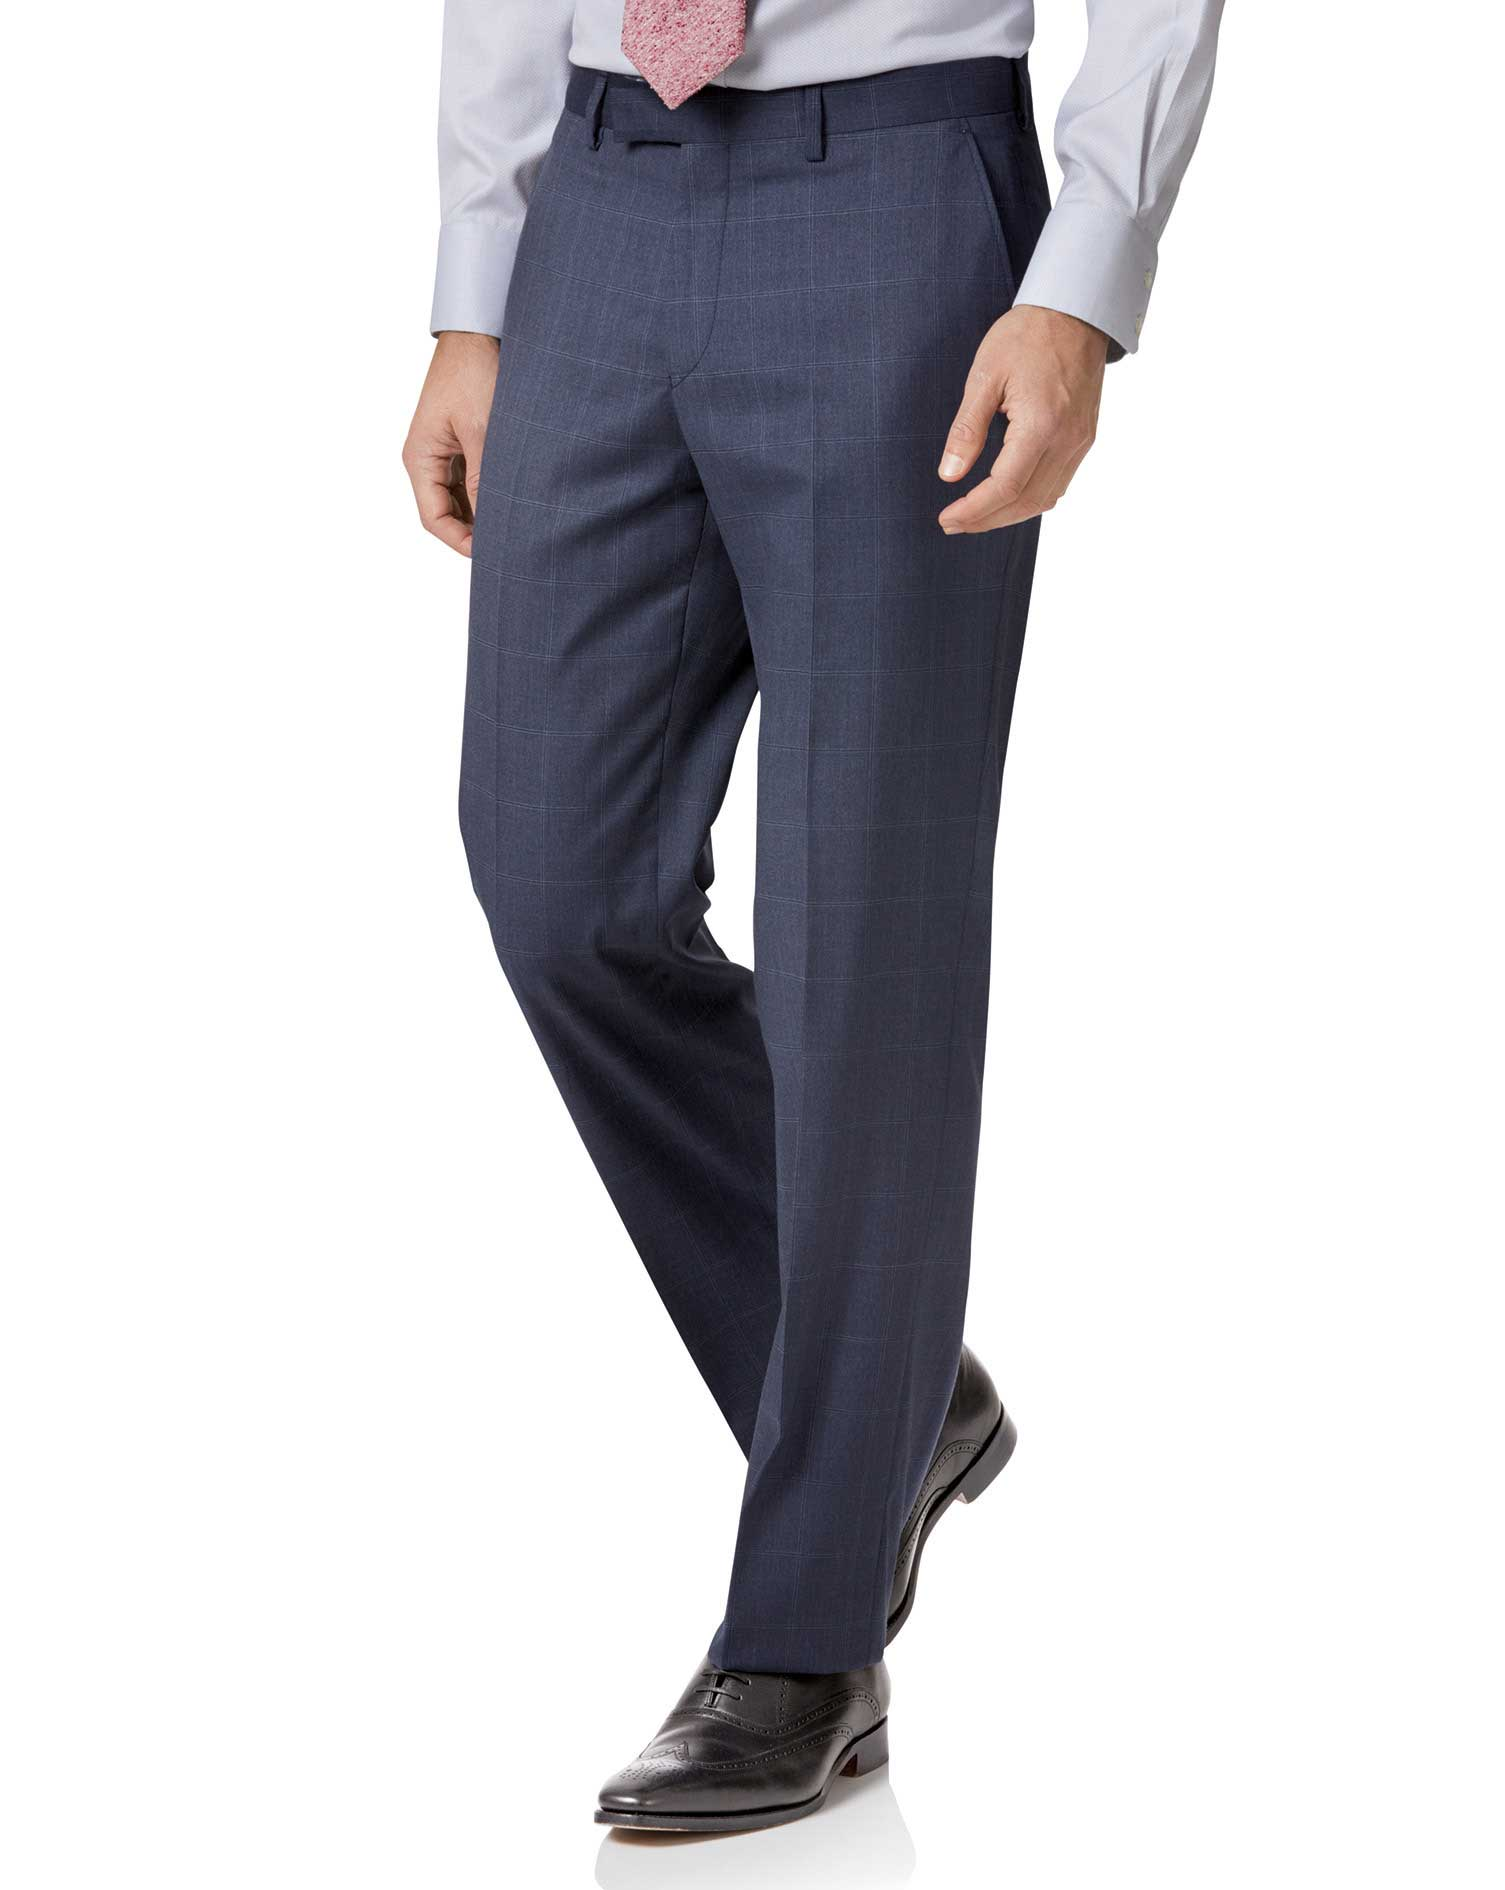 Airforce Blue Classic Fit Italian Suit Trouser Size W34 L34 by Charles Tyrwhitt